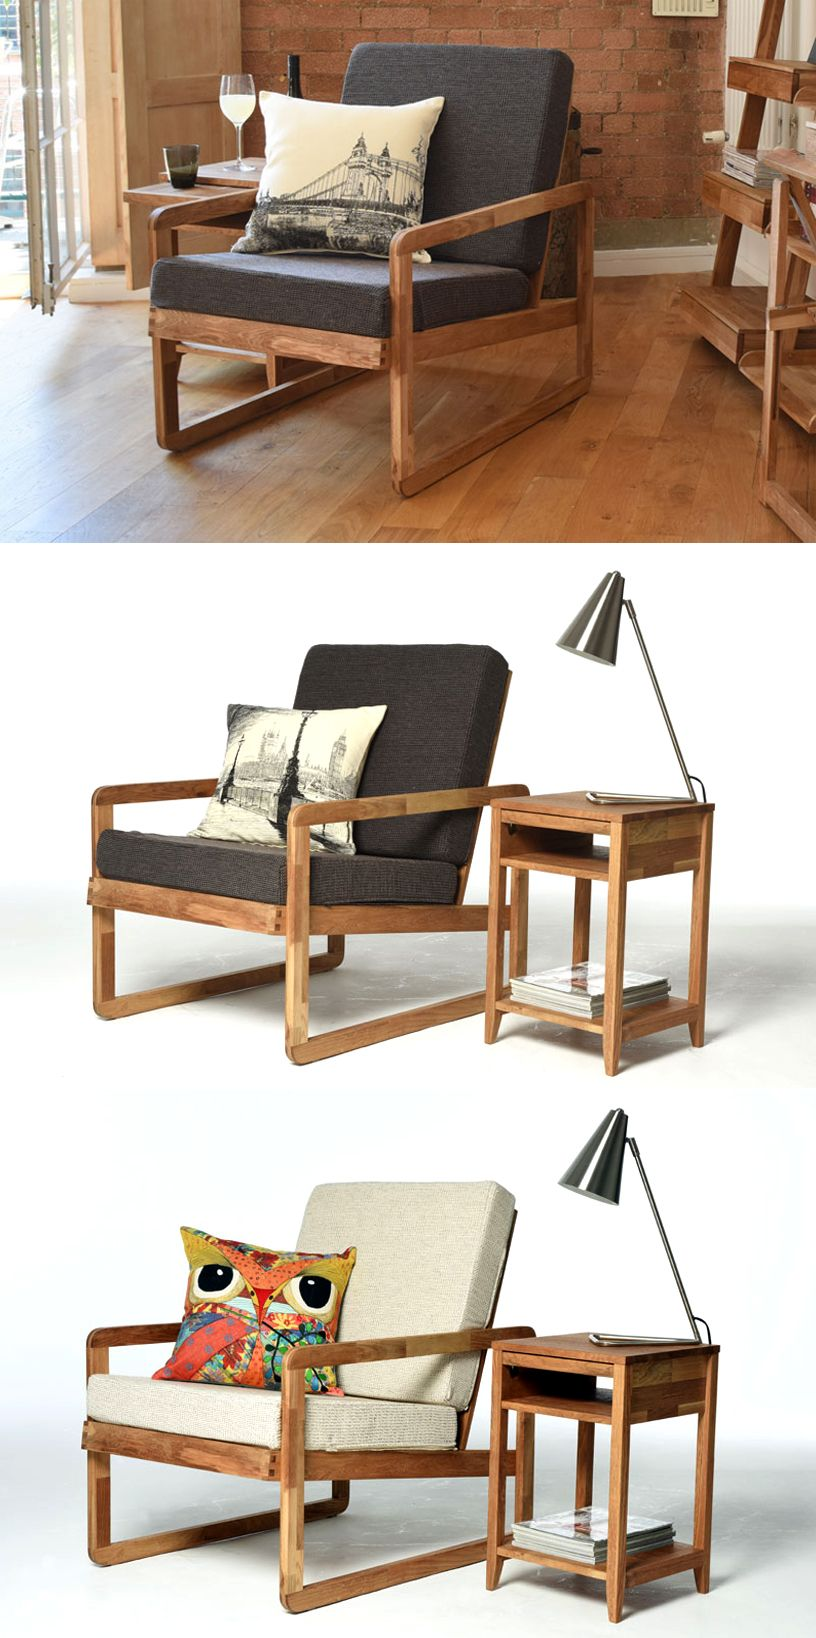 This Oak Loop Chair is designed with extreme rest and